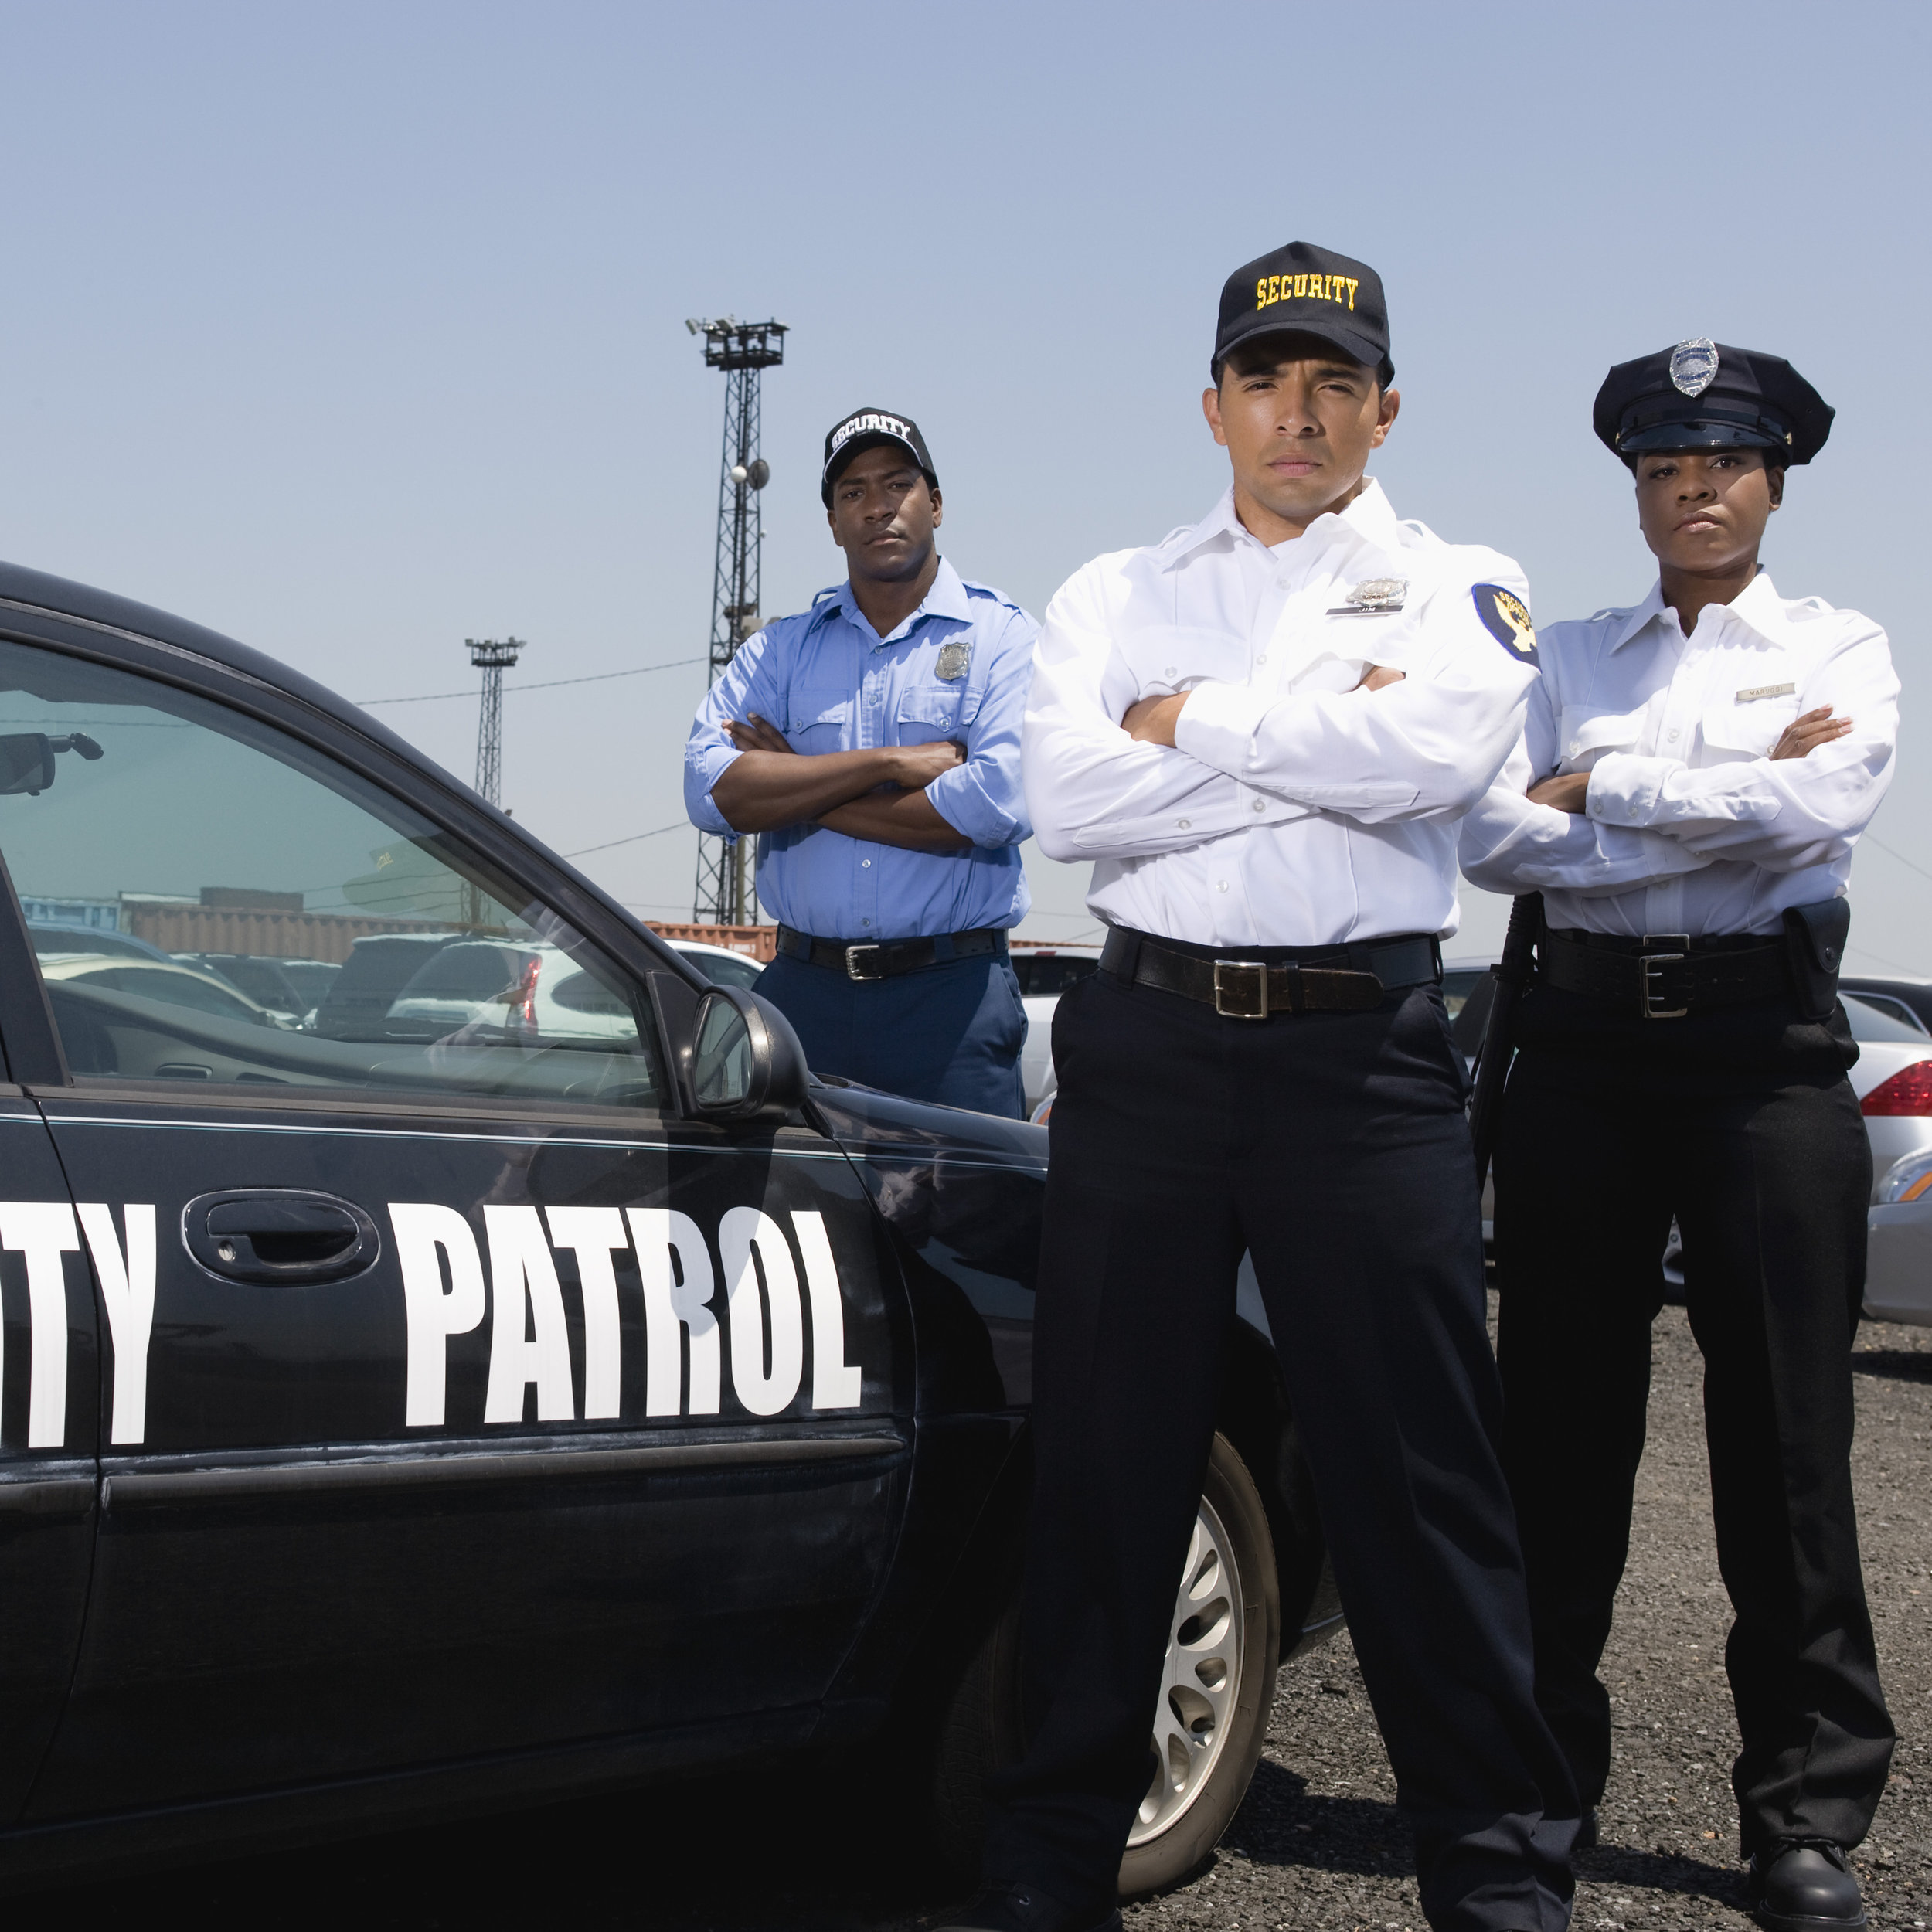 A1A Security Services is the leading bike and vehicle patrol security agency in Northeast, Florida.